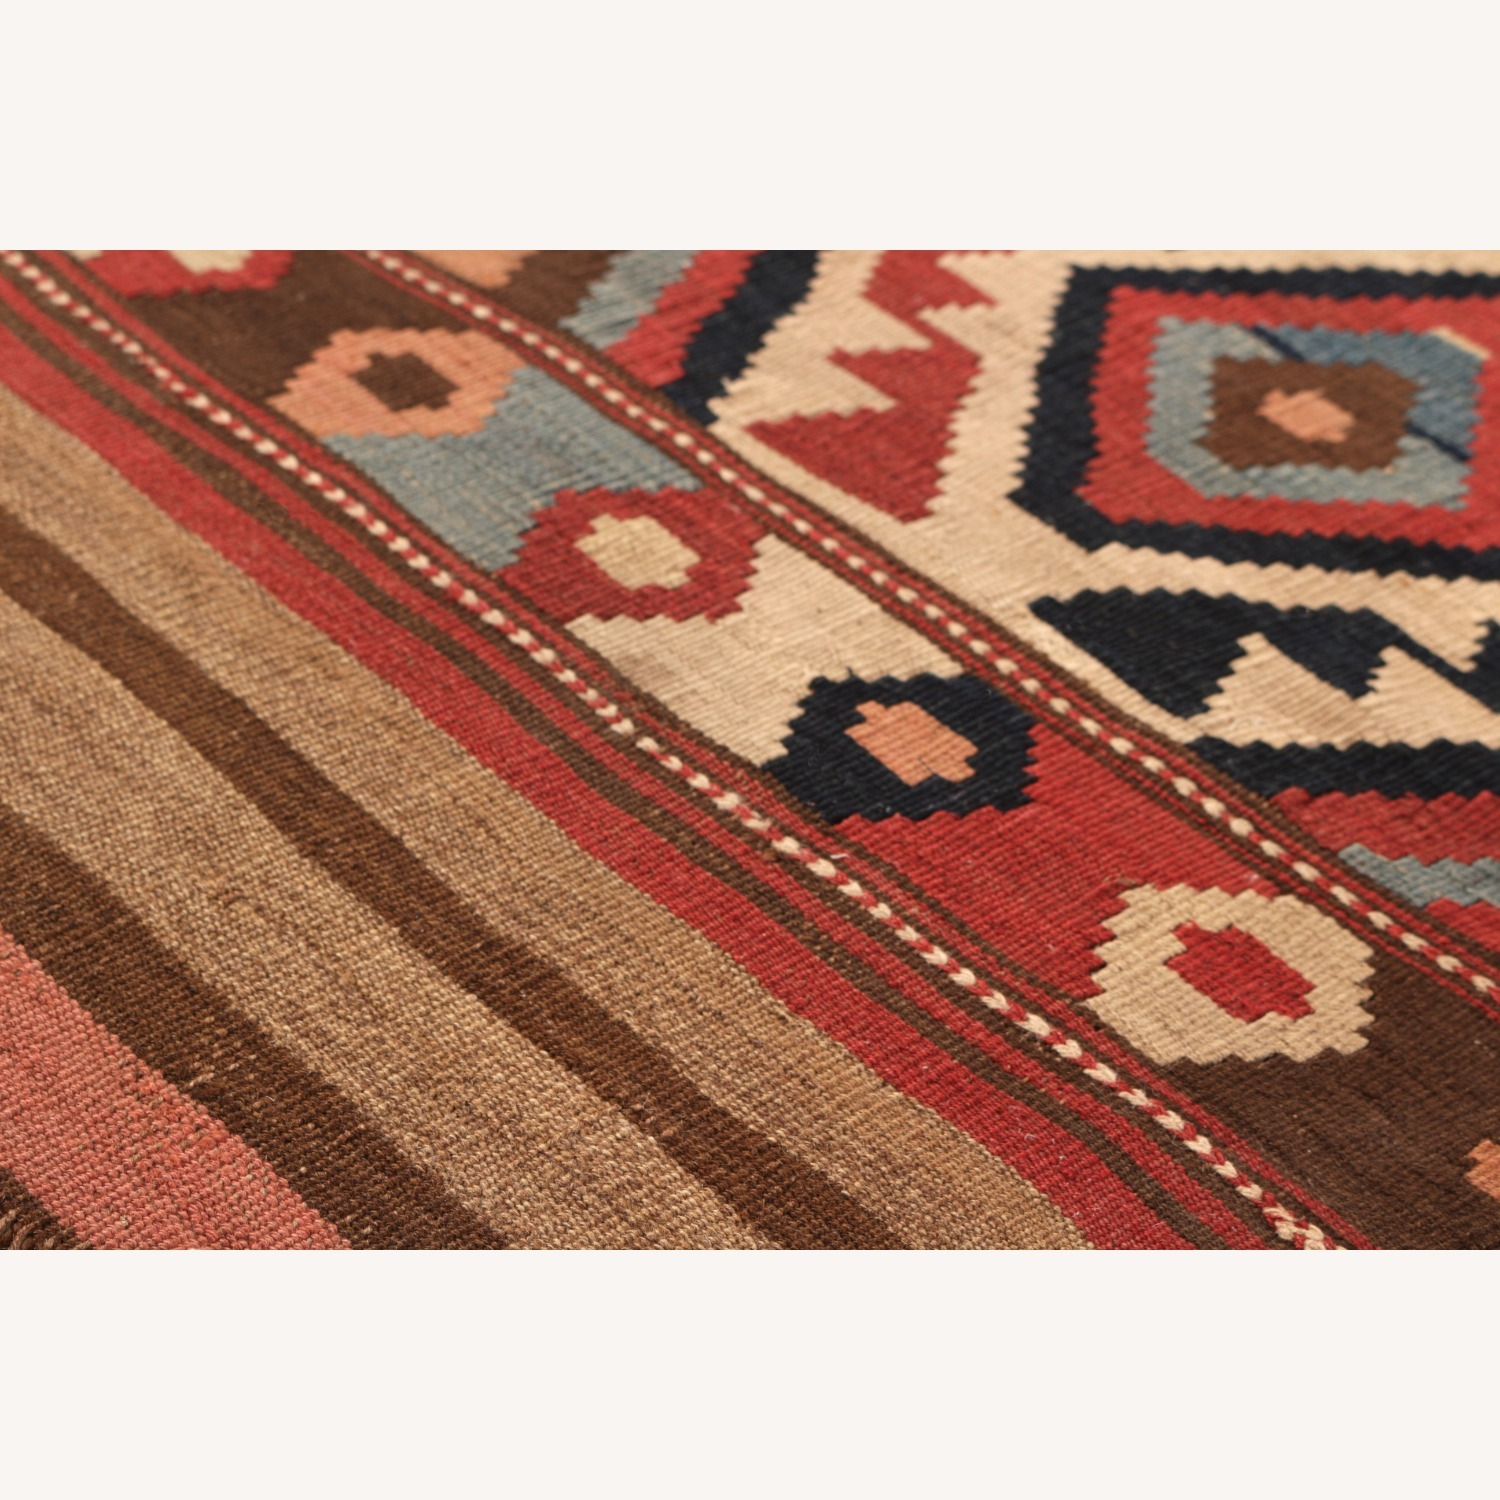 Antique Shahsavan Rug Transitional Tribal Pattern - image-4